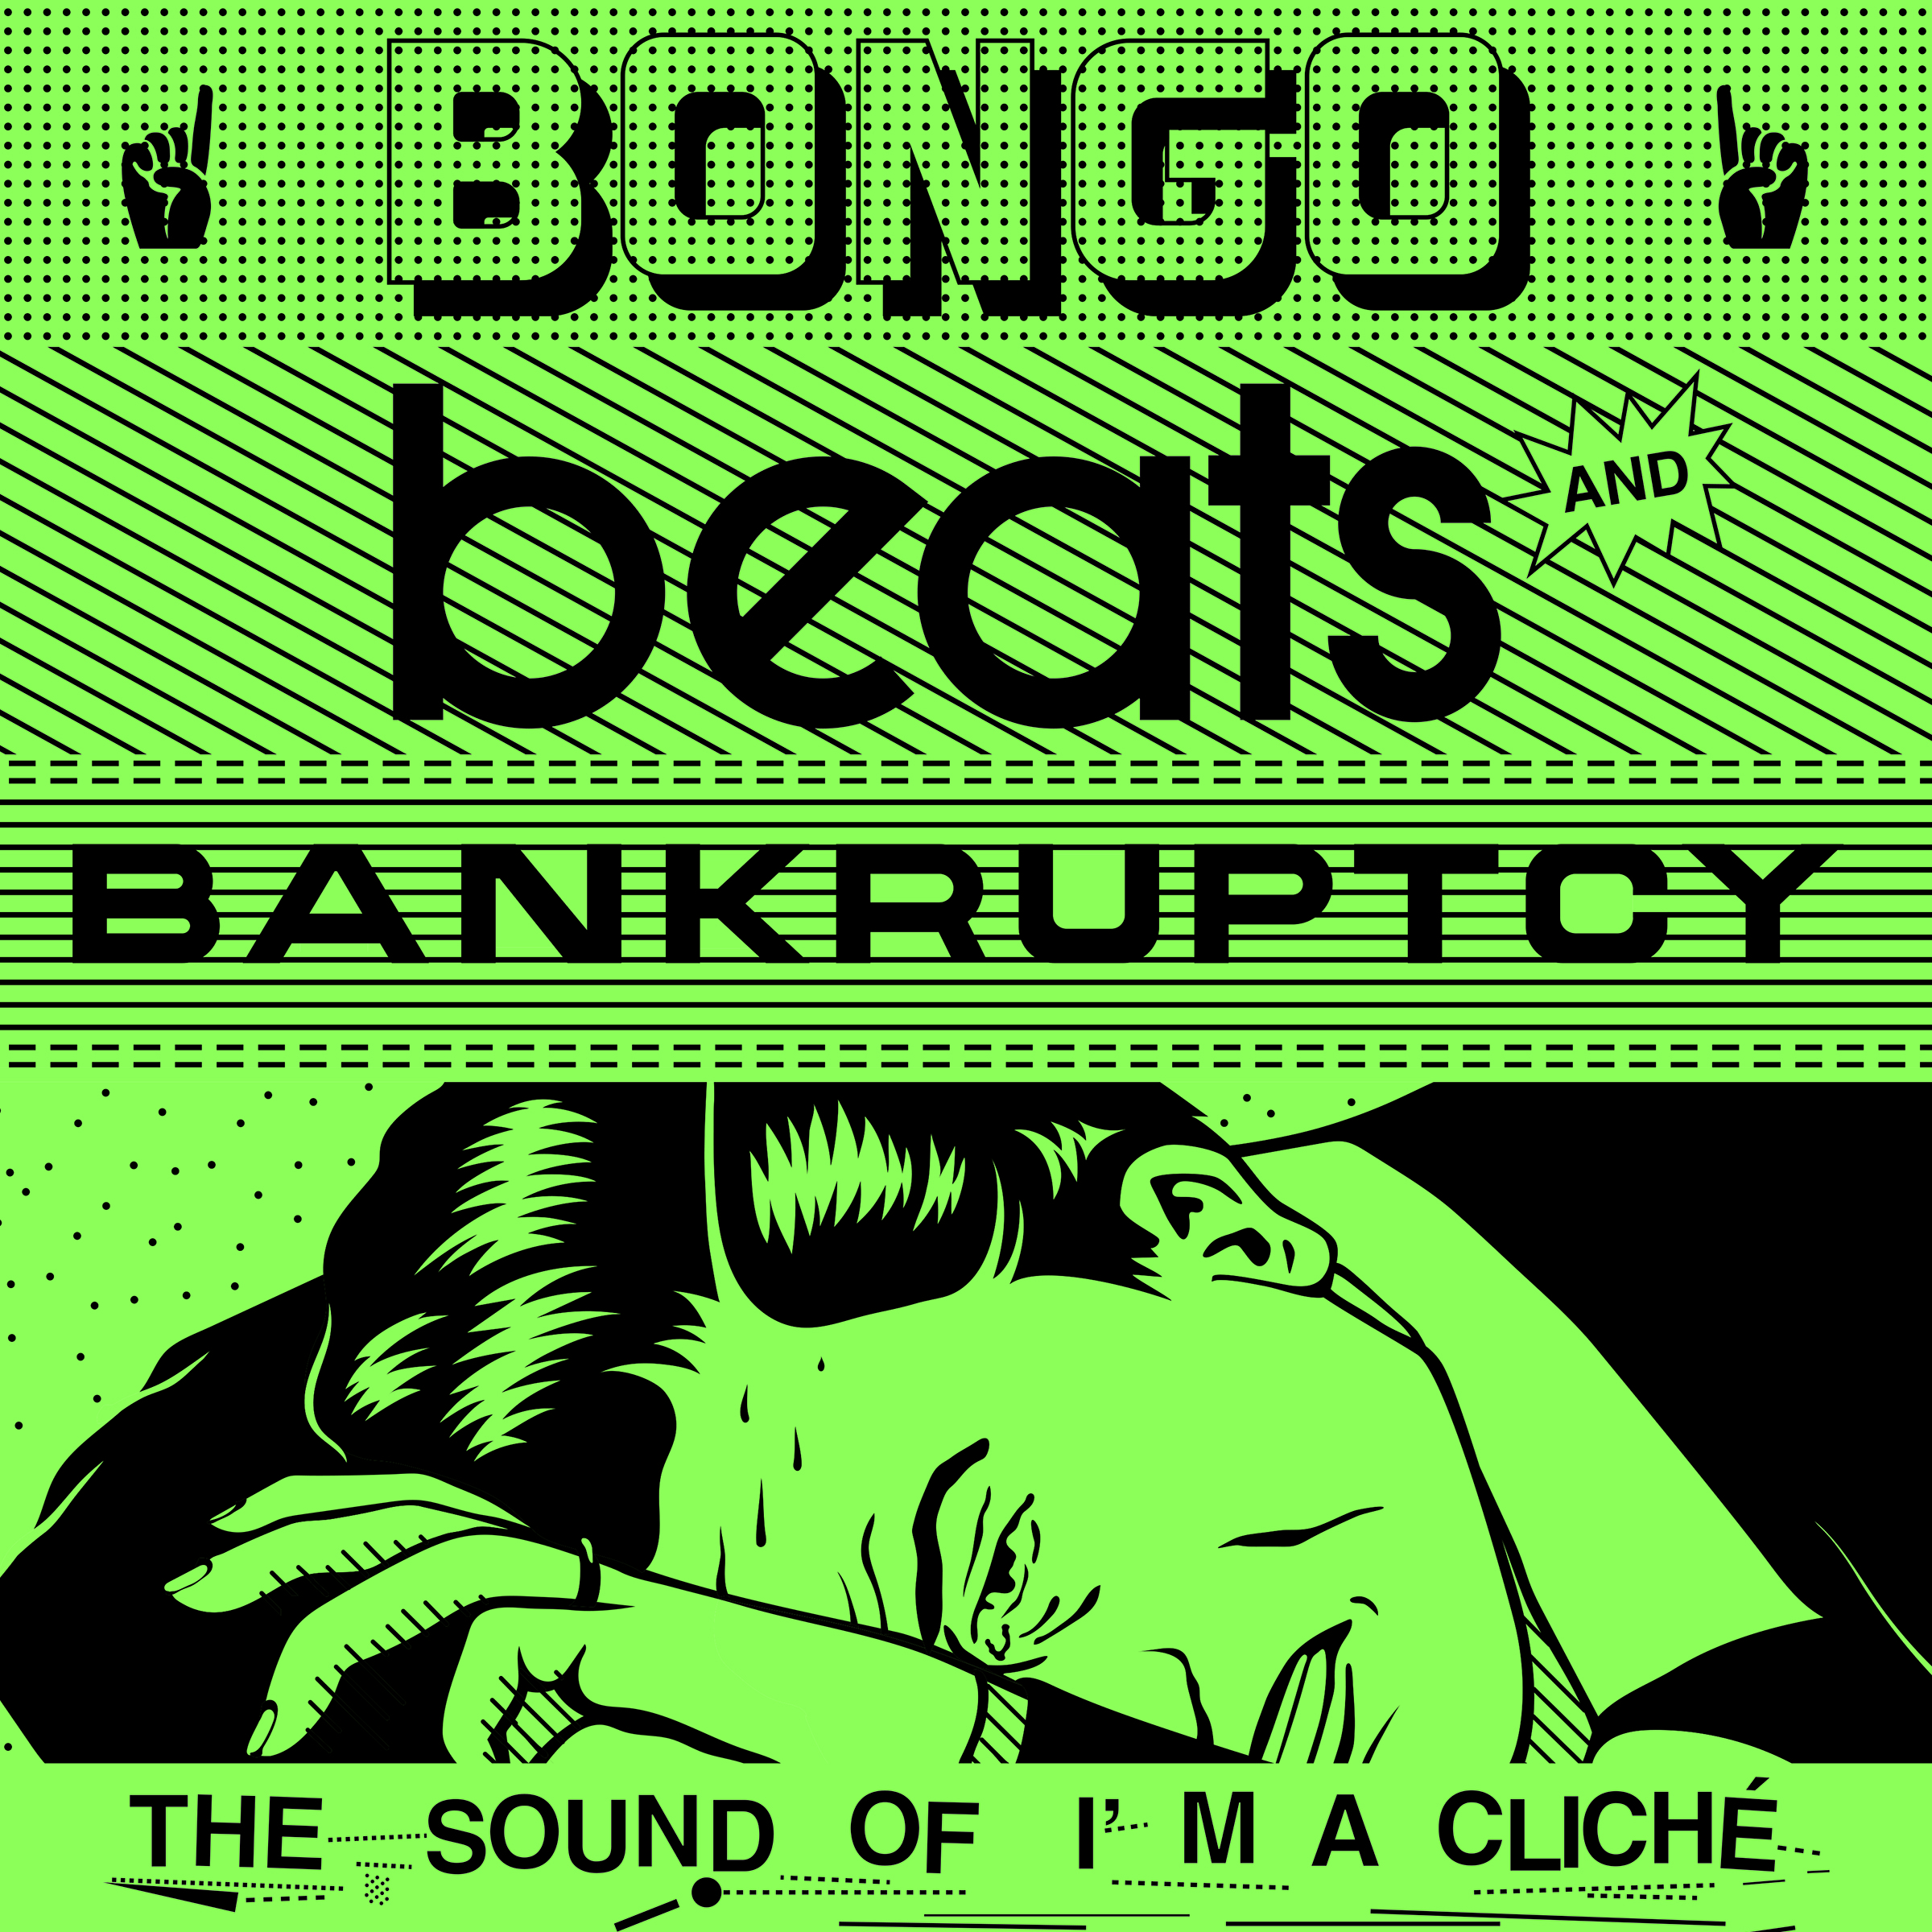 Bongo Beats and Bankruptcy: The Sound of I'm a Cliché Image